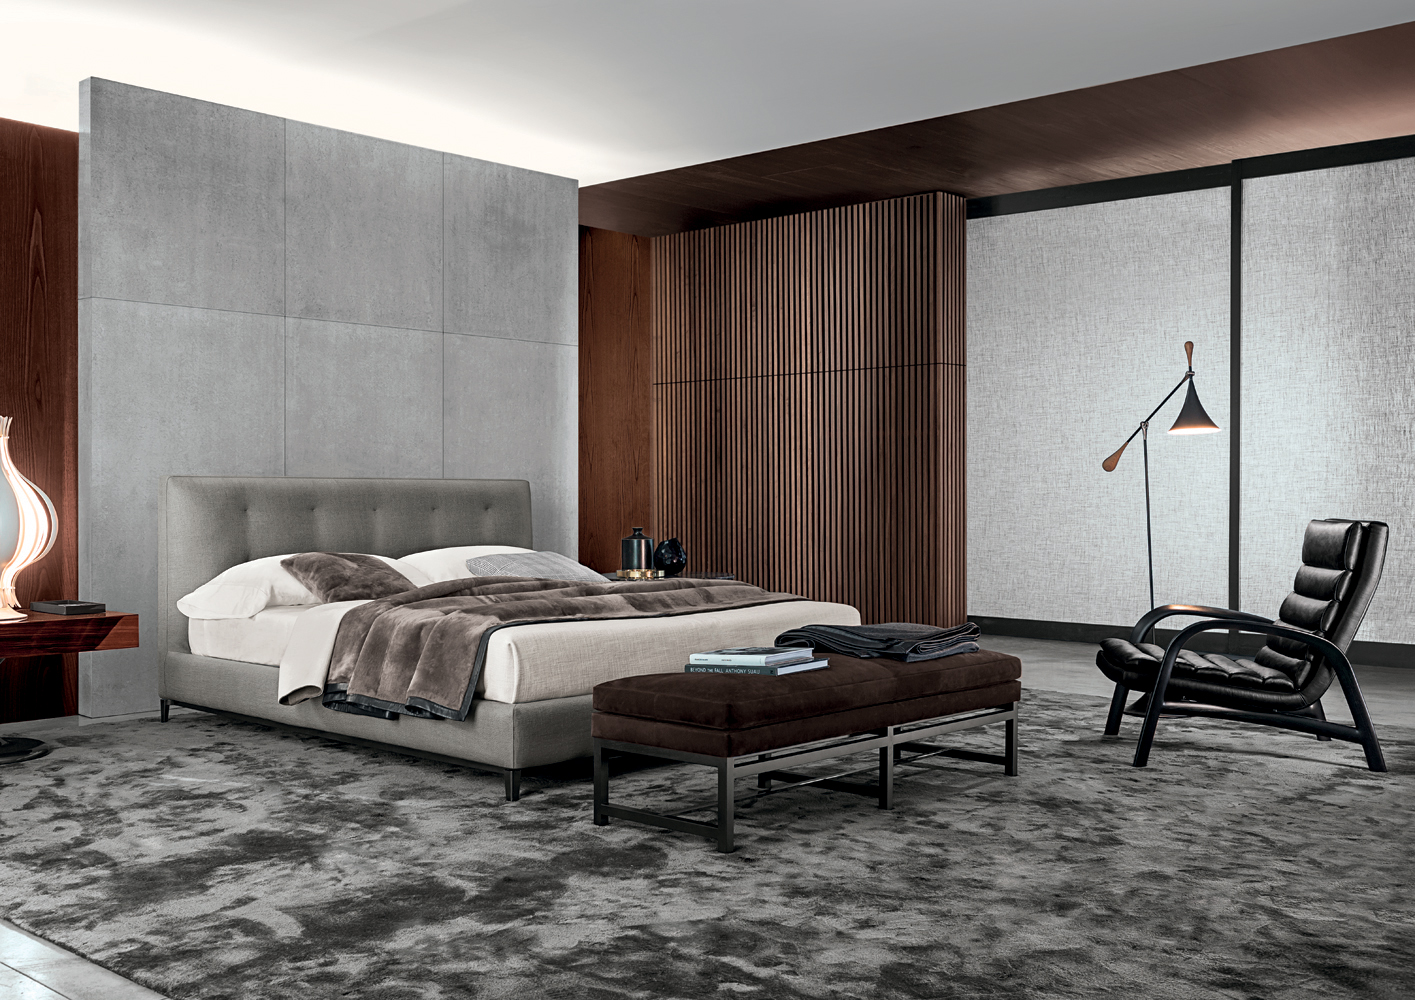 New 28 Minotti Sofa Bed Minotti Sofa Bed Centerfieldbar Contact Us About This Item